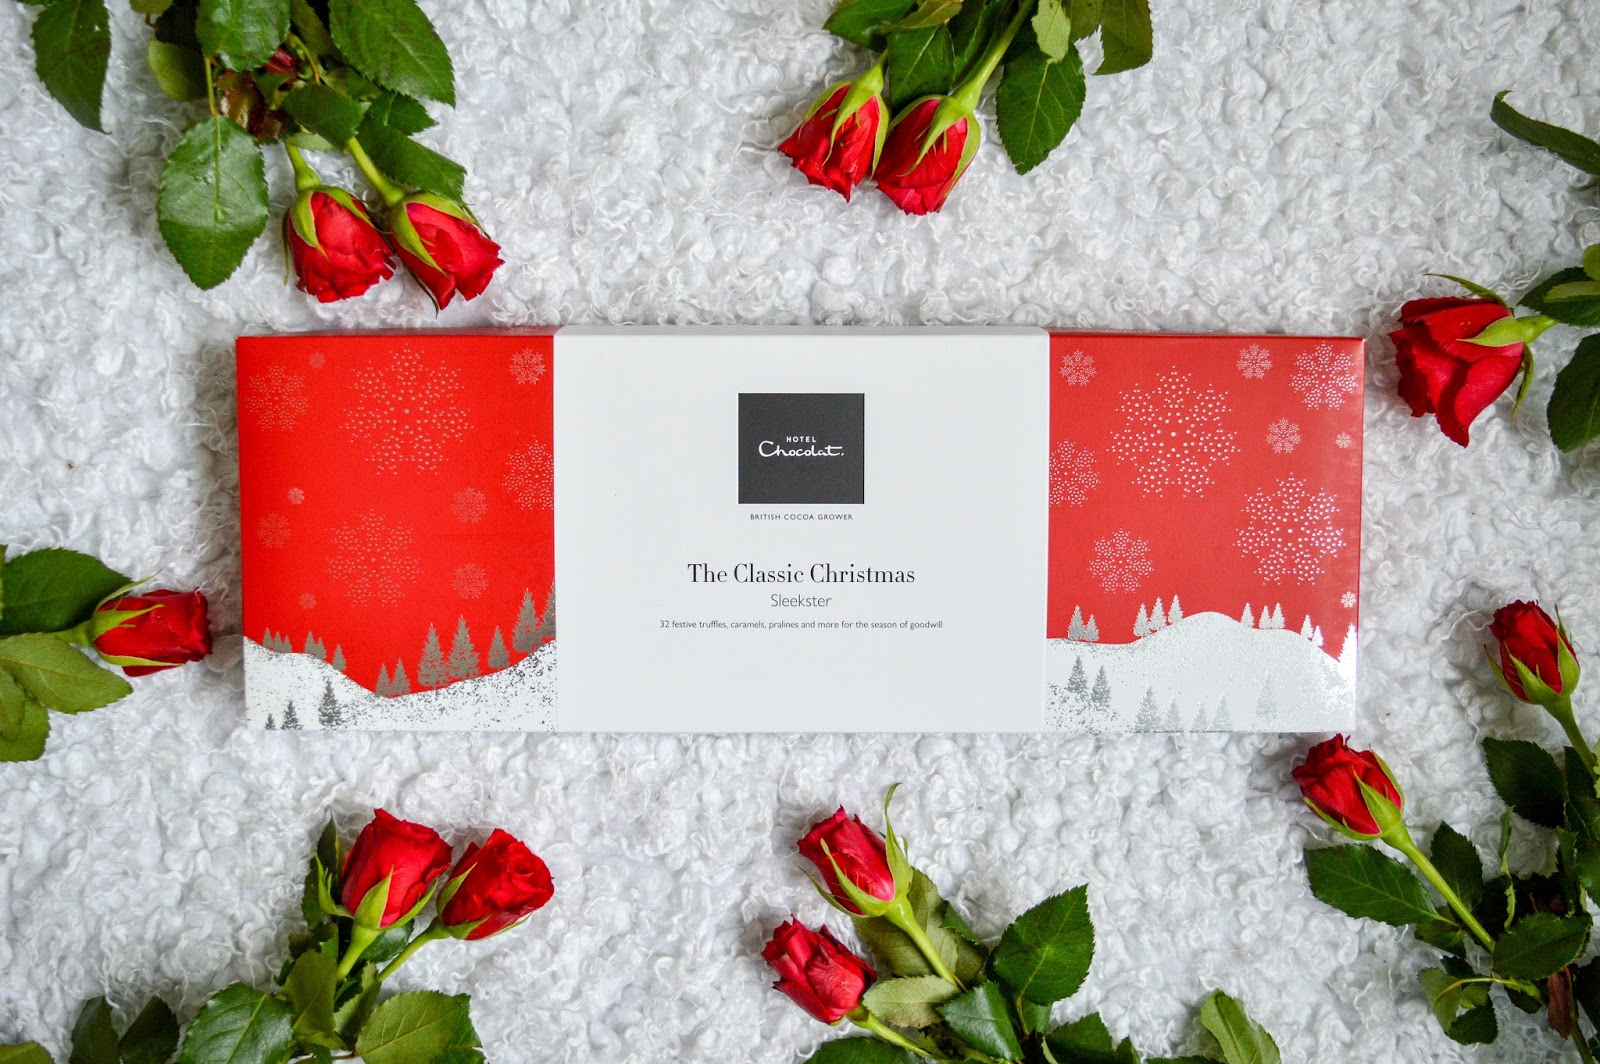 i was delighted to be able to try out a box from hotel chocolats christmas gift boxes this year and was sent the classic christmas chocolate sleekster